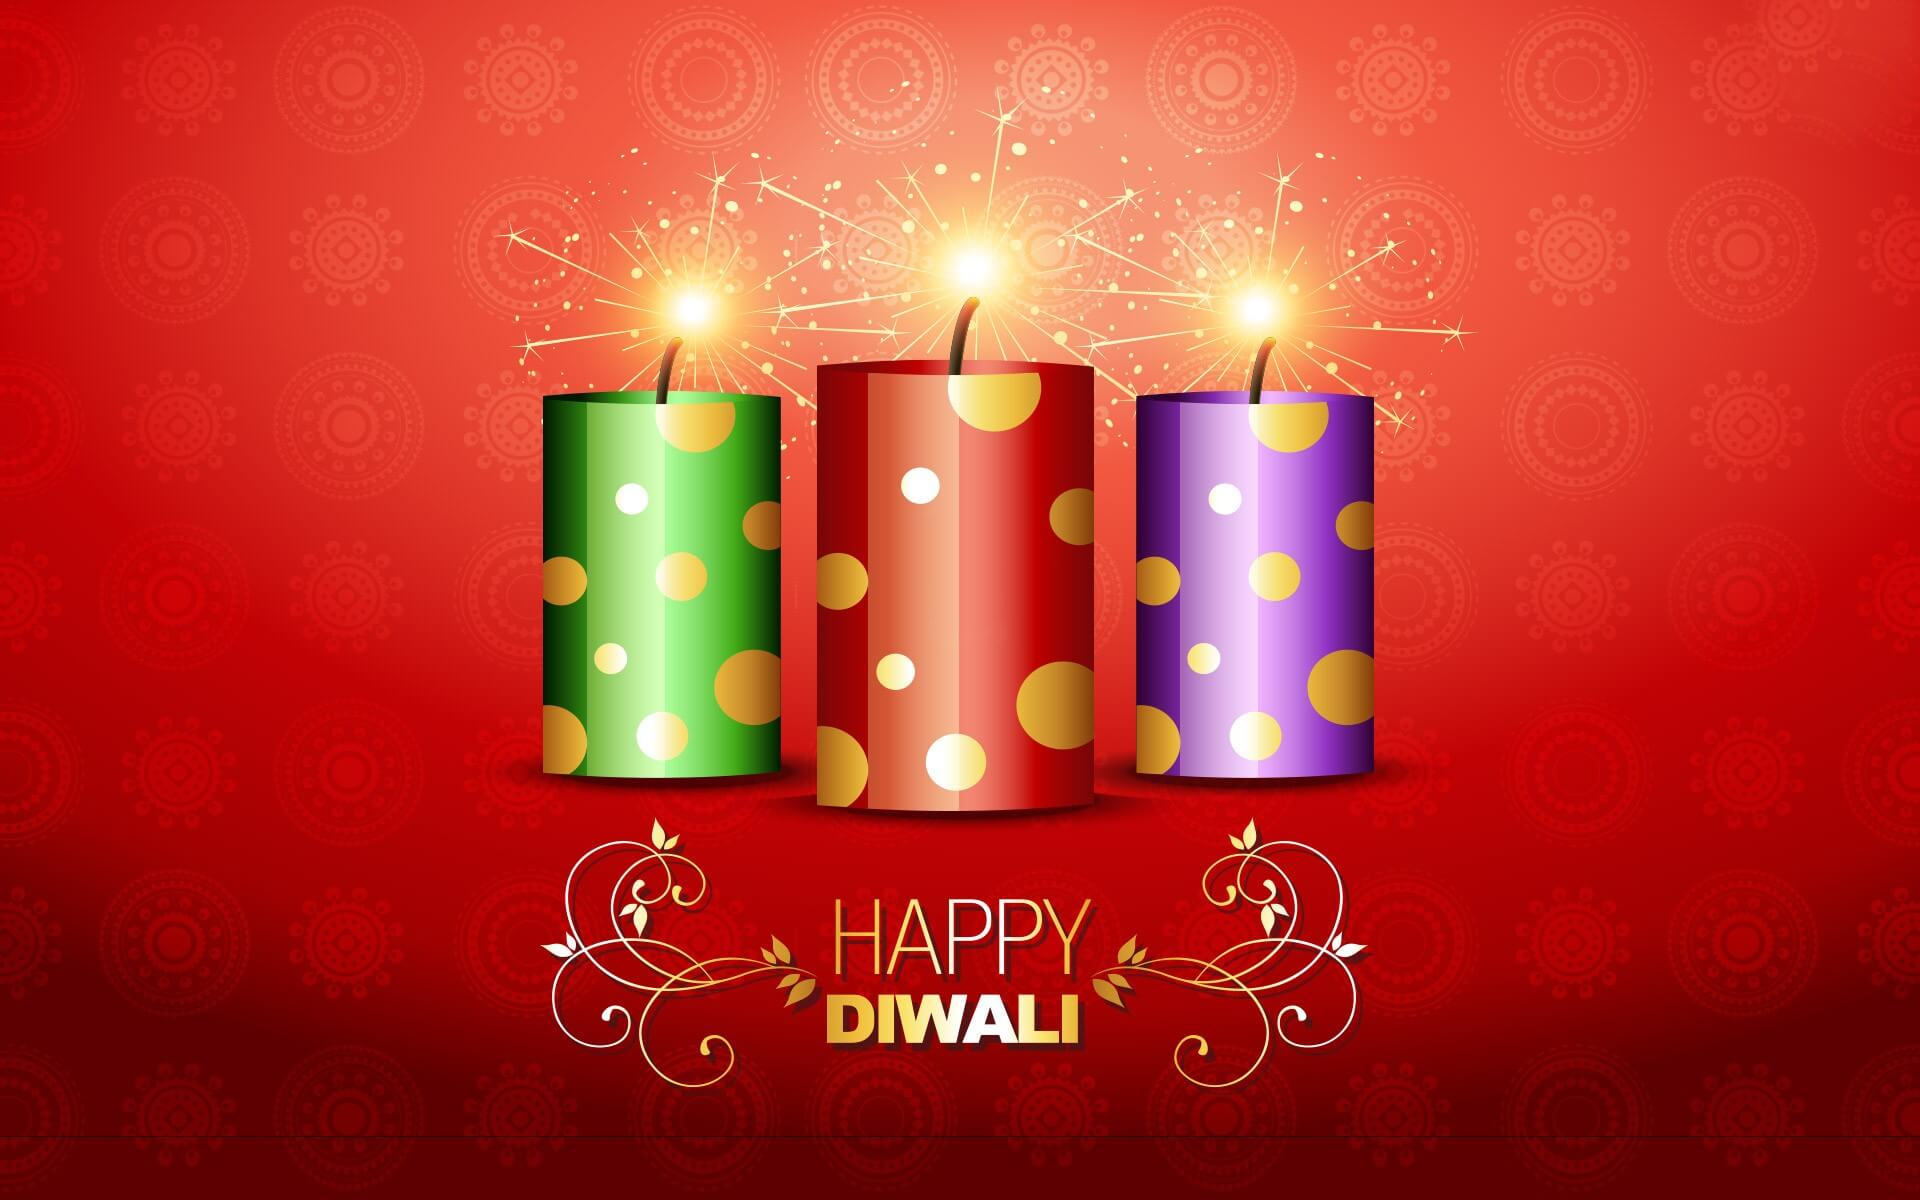 happy diwali wishes crackers free hd wallpaper